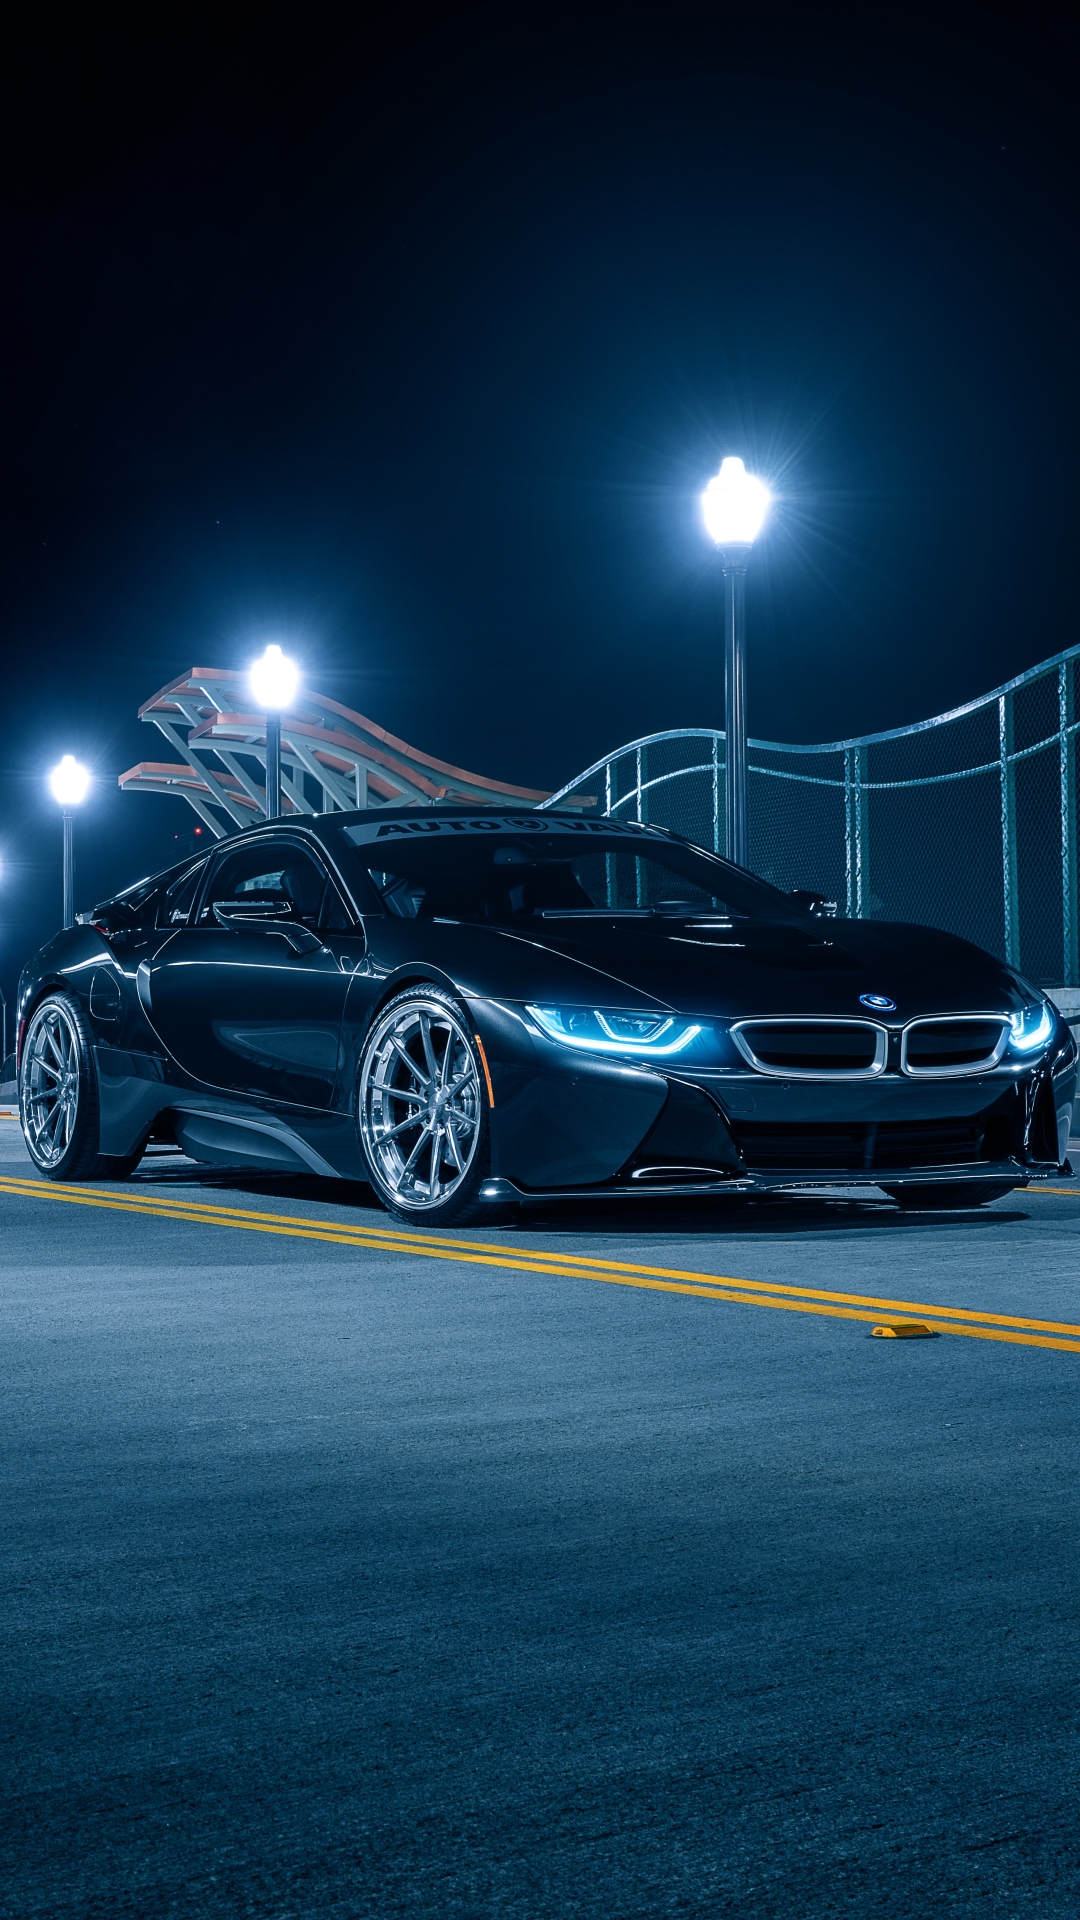 Bmw Hd Wallpaper Iphone - Bmw I8 Wallpaper For Iphone , HD Wallpaper & Backgrounds